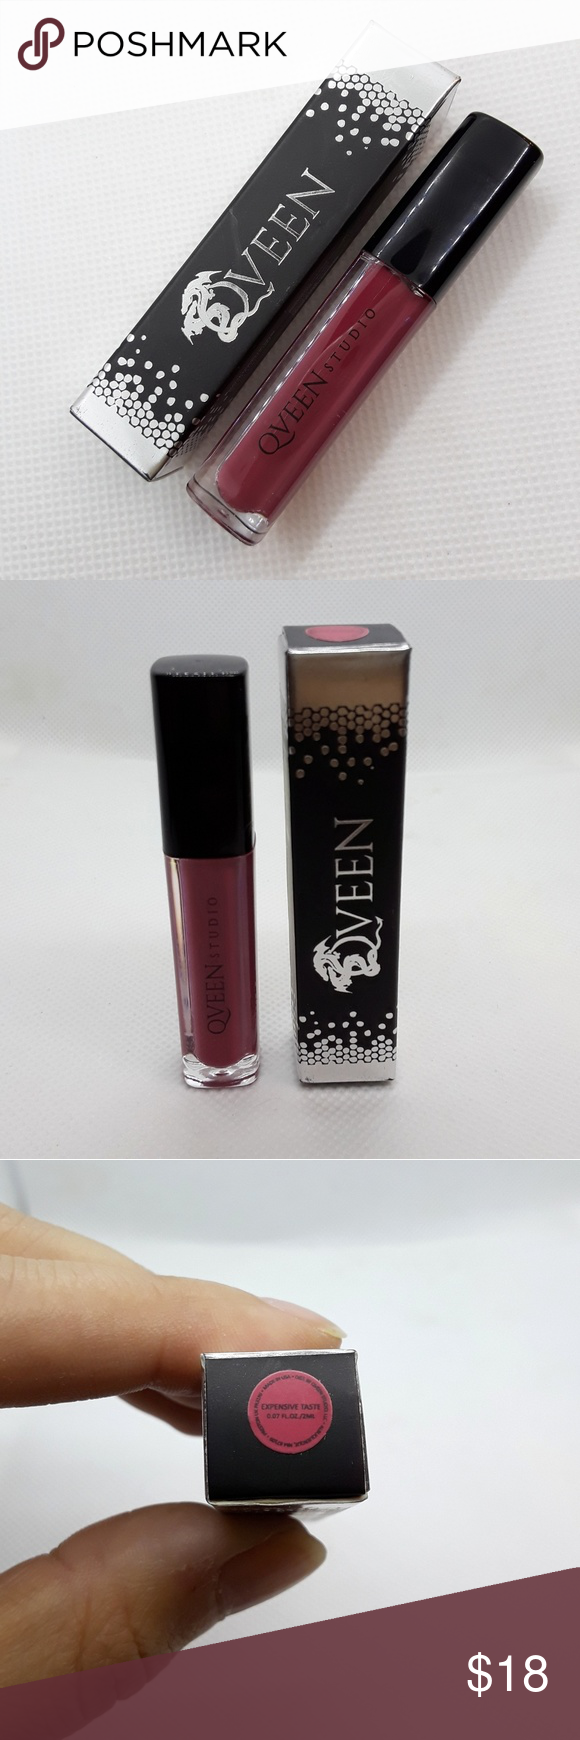 Qveen Expensive Taste Matte Lip Satin Matte Lip Satin by Qveen in the color